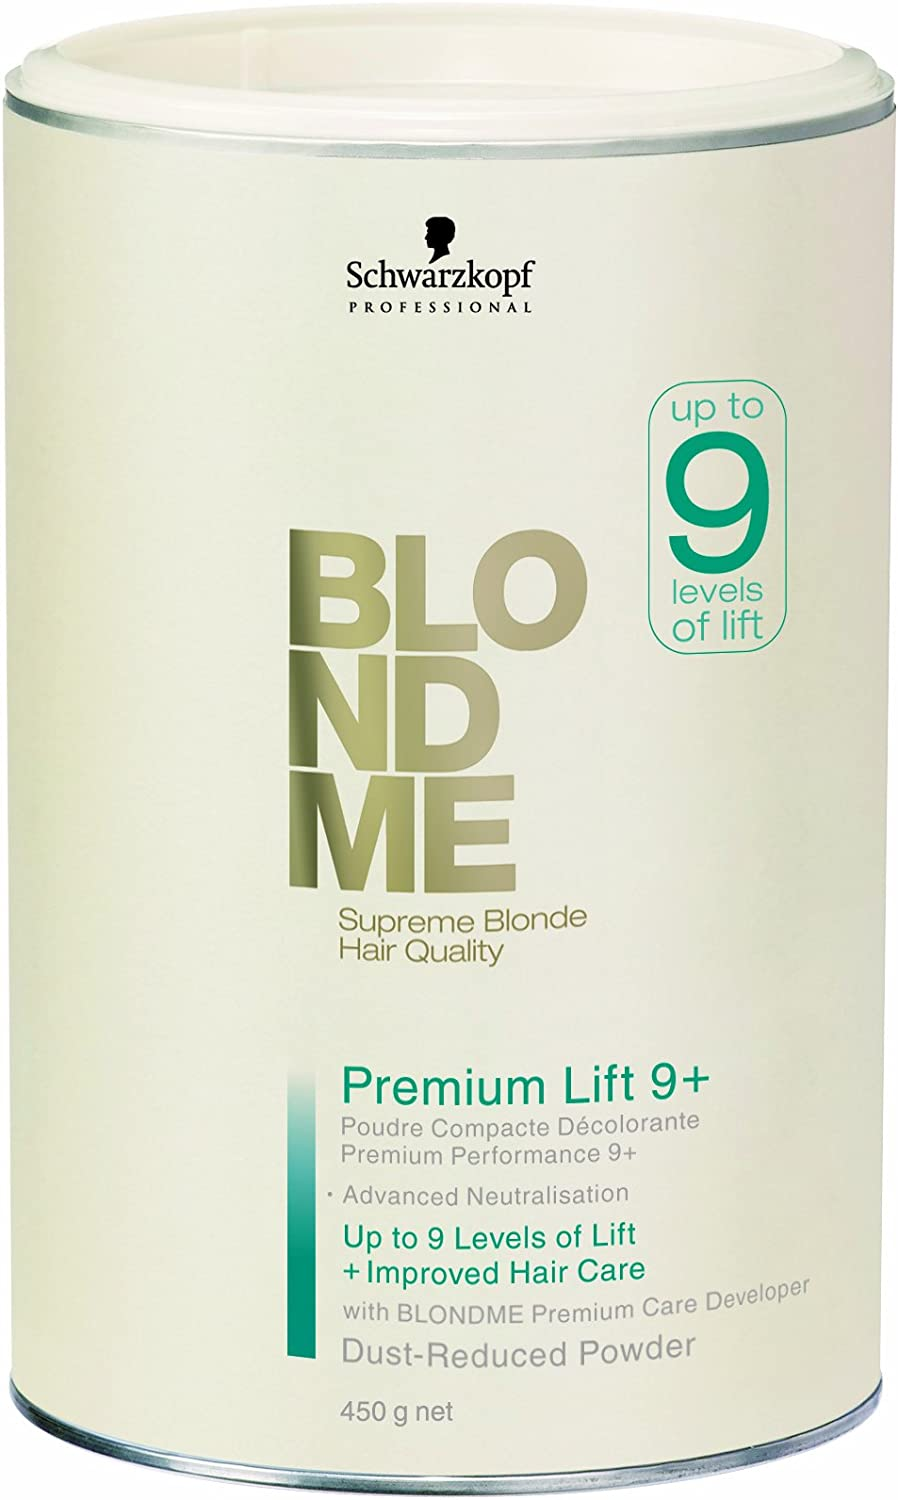 Schwarzkopf BM Premium Lightener Polvos Compactos Decolorantes - 450 ml